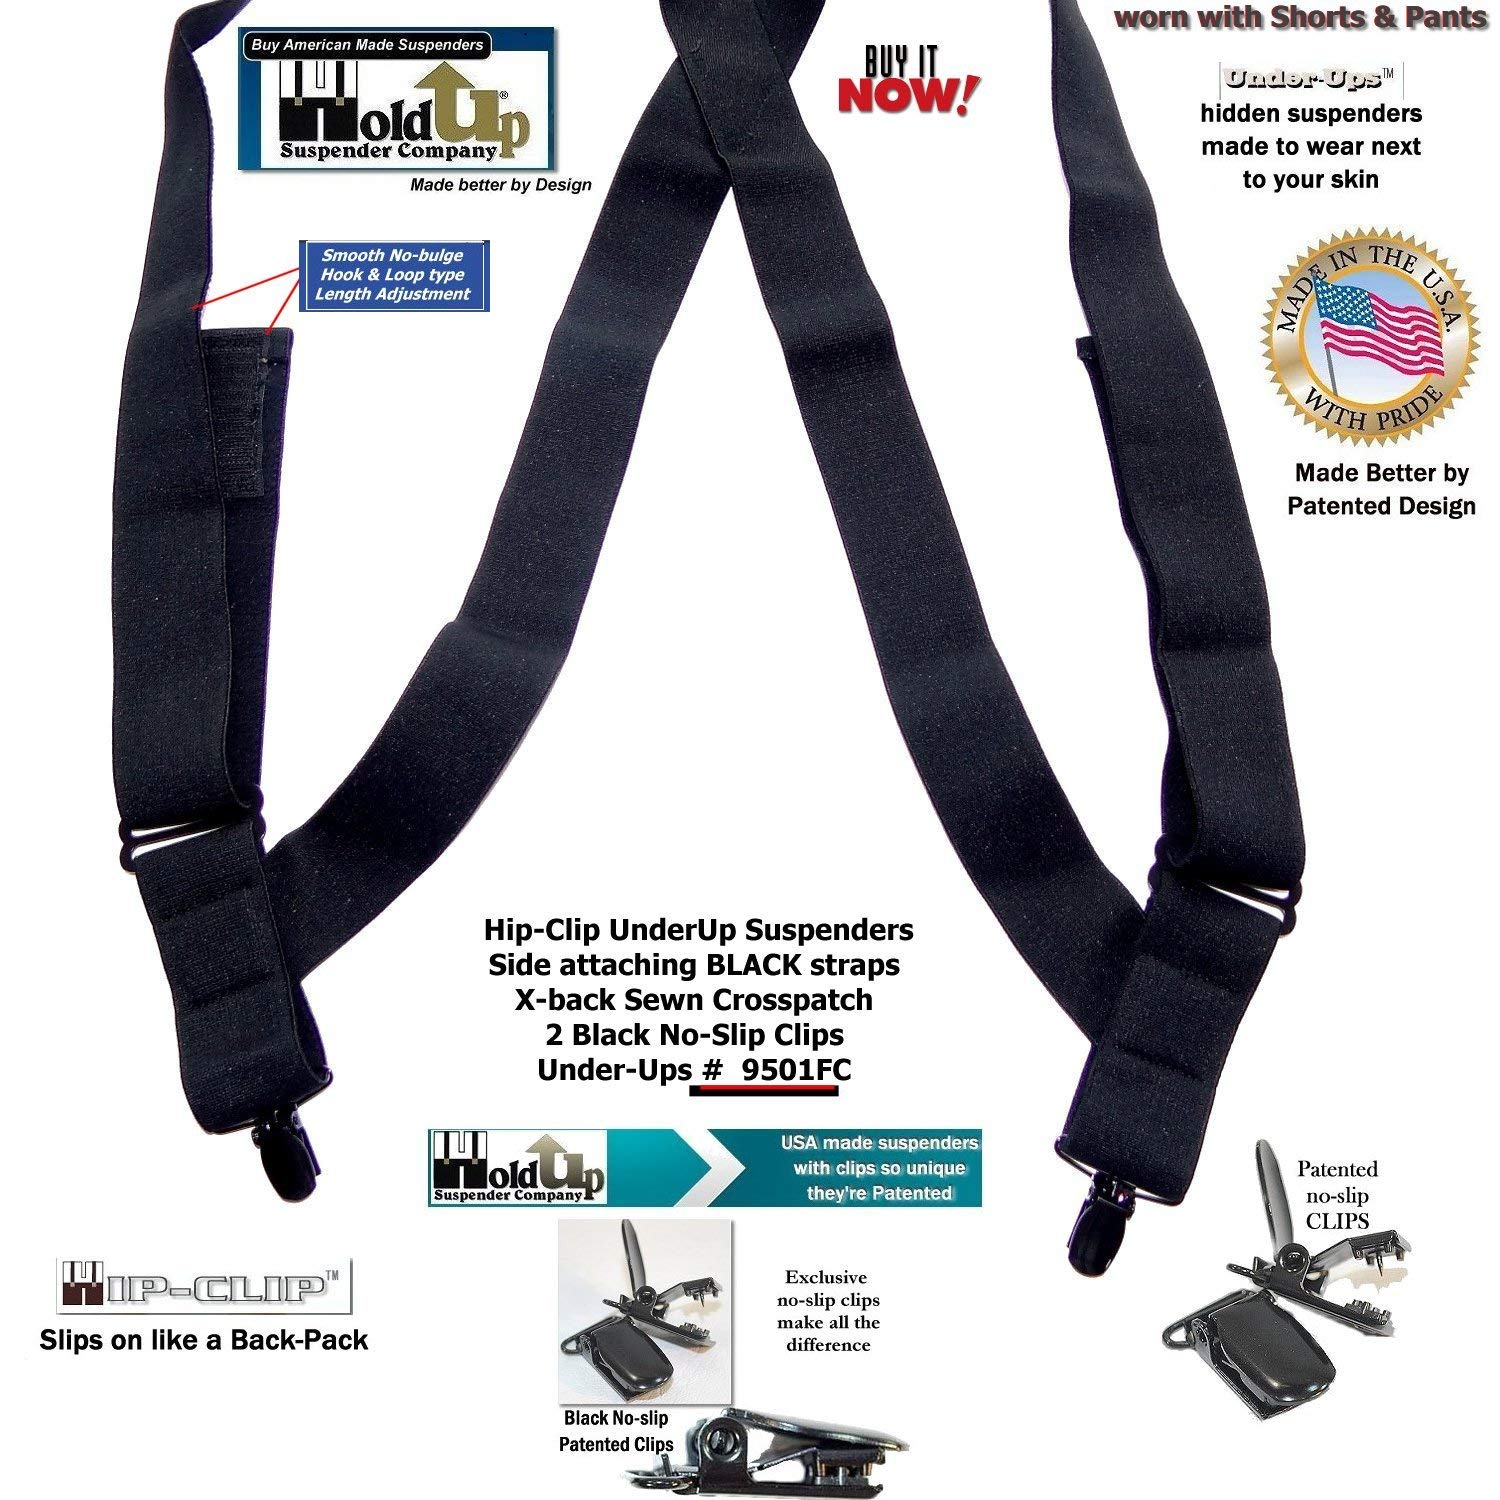 1 1//2 Undergarment Hold-Up/® Suspender Hip Clip style Patented No-slip/® Clips